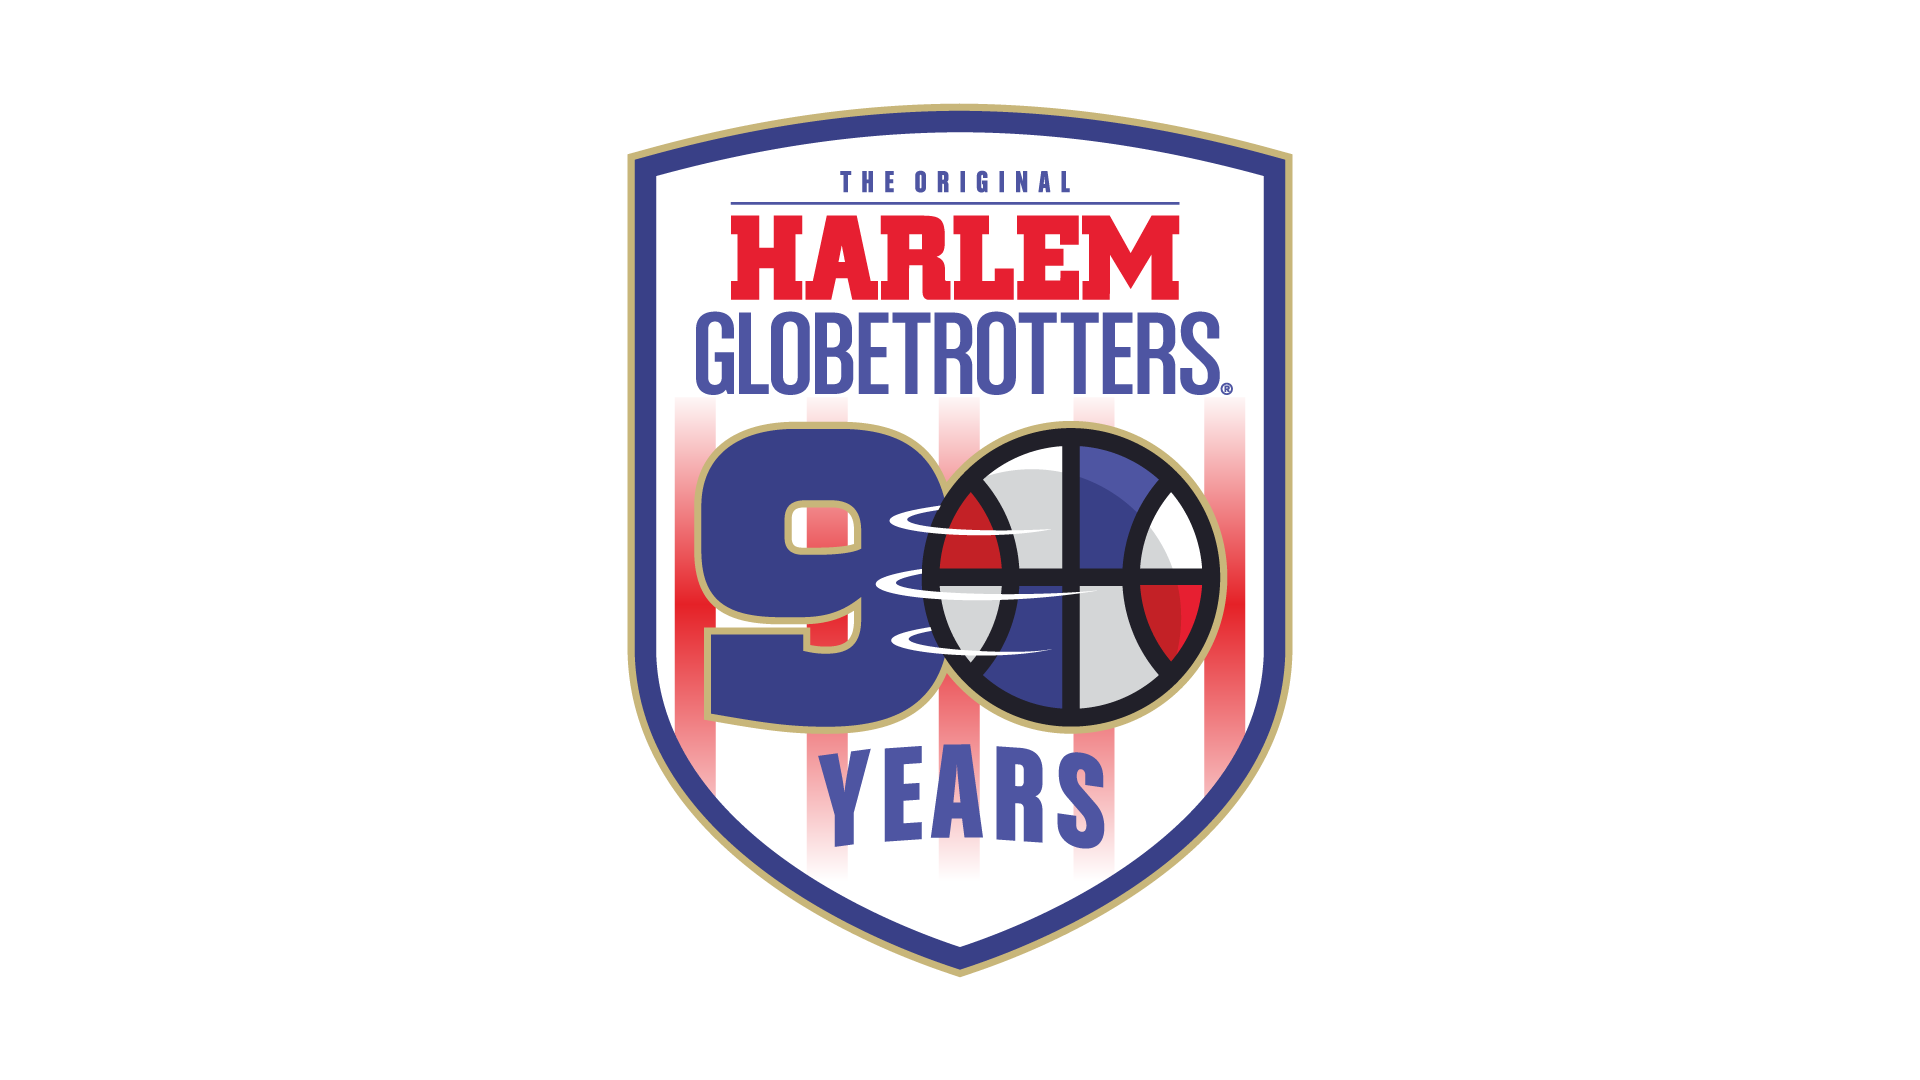 The Harlem Globetrotters Ring the NYSE Opening Bell®.